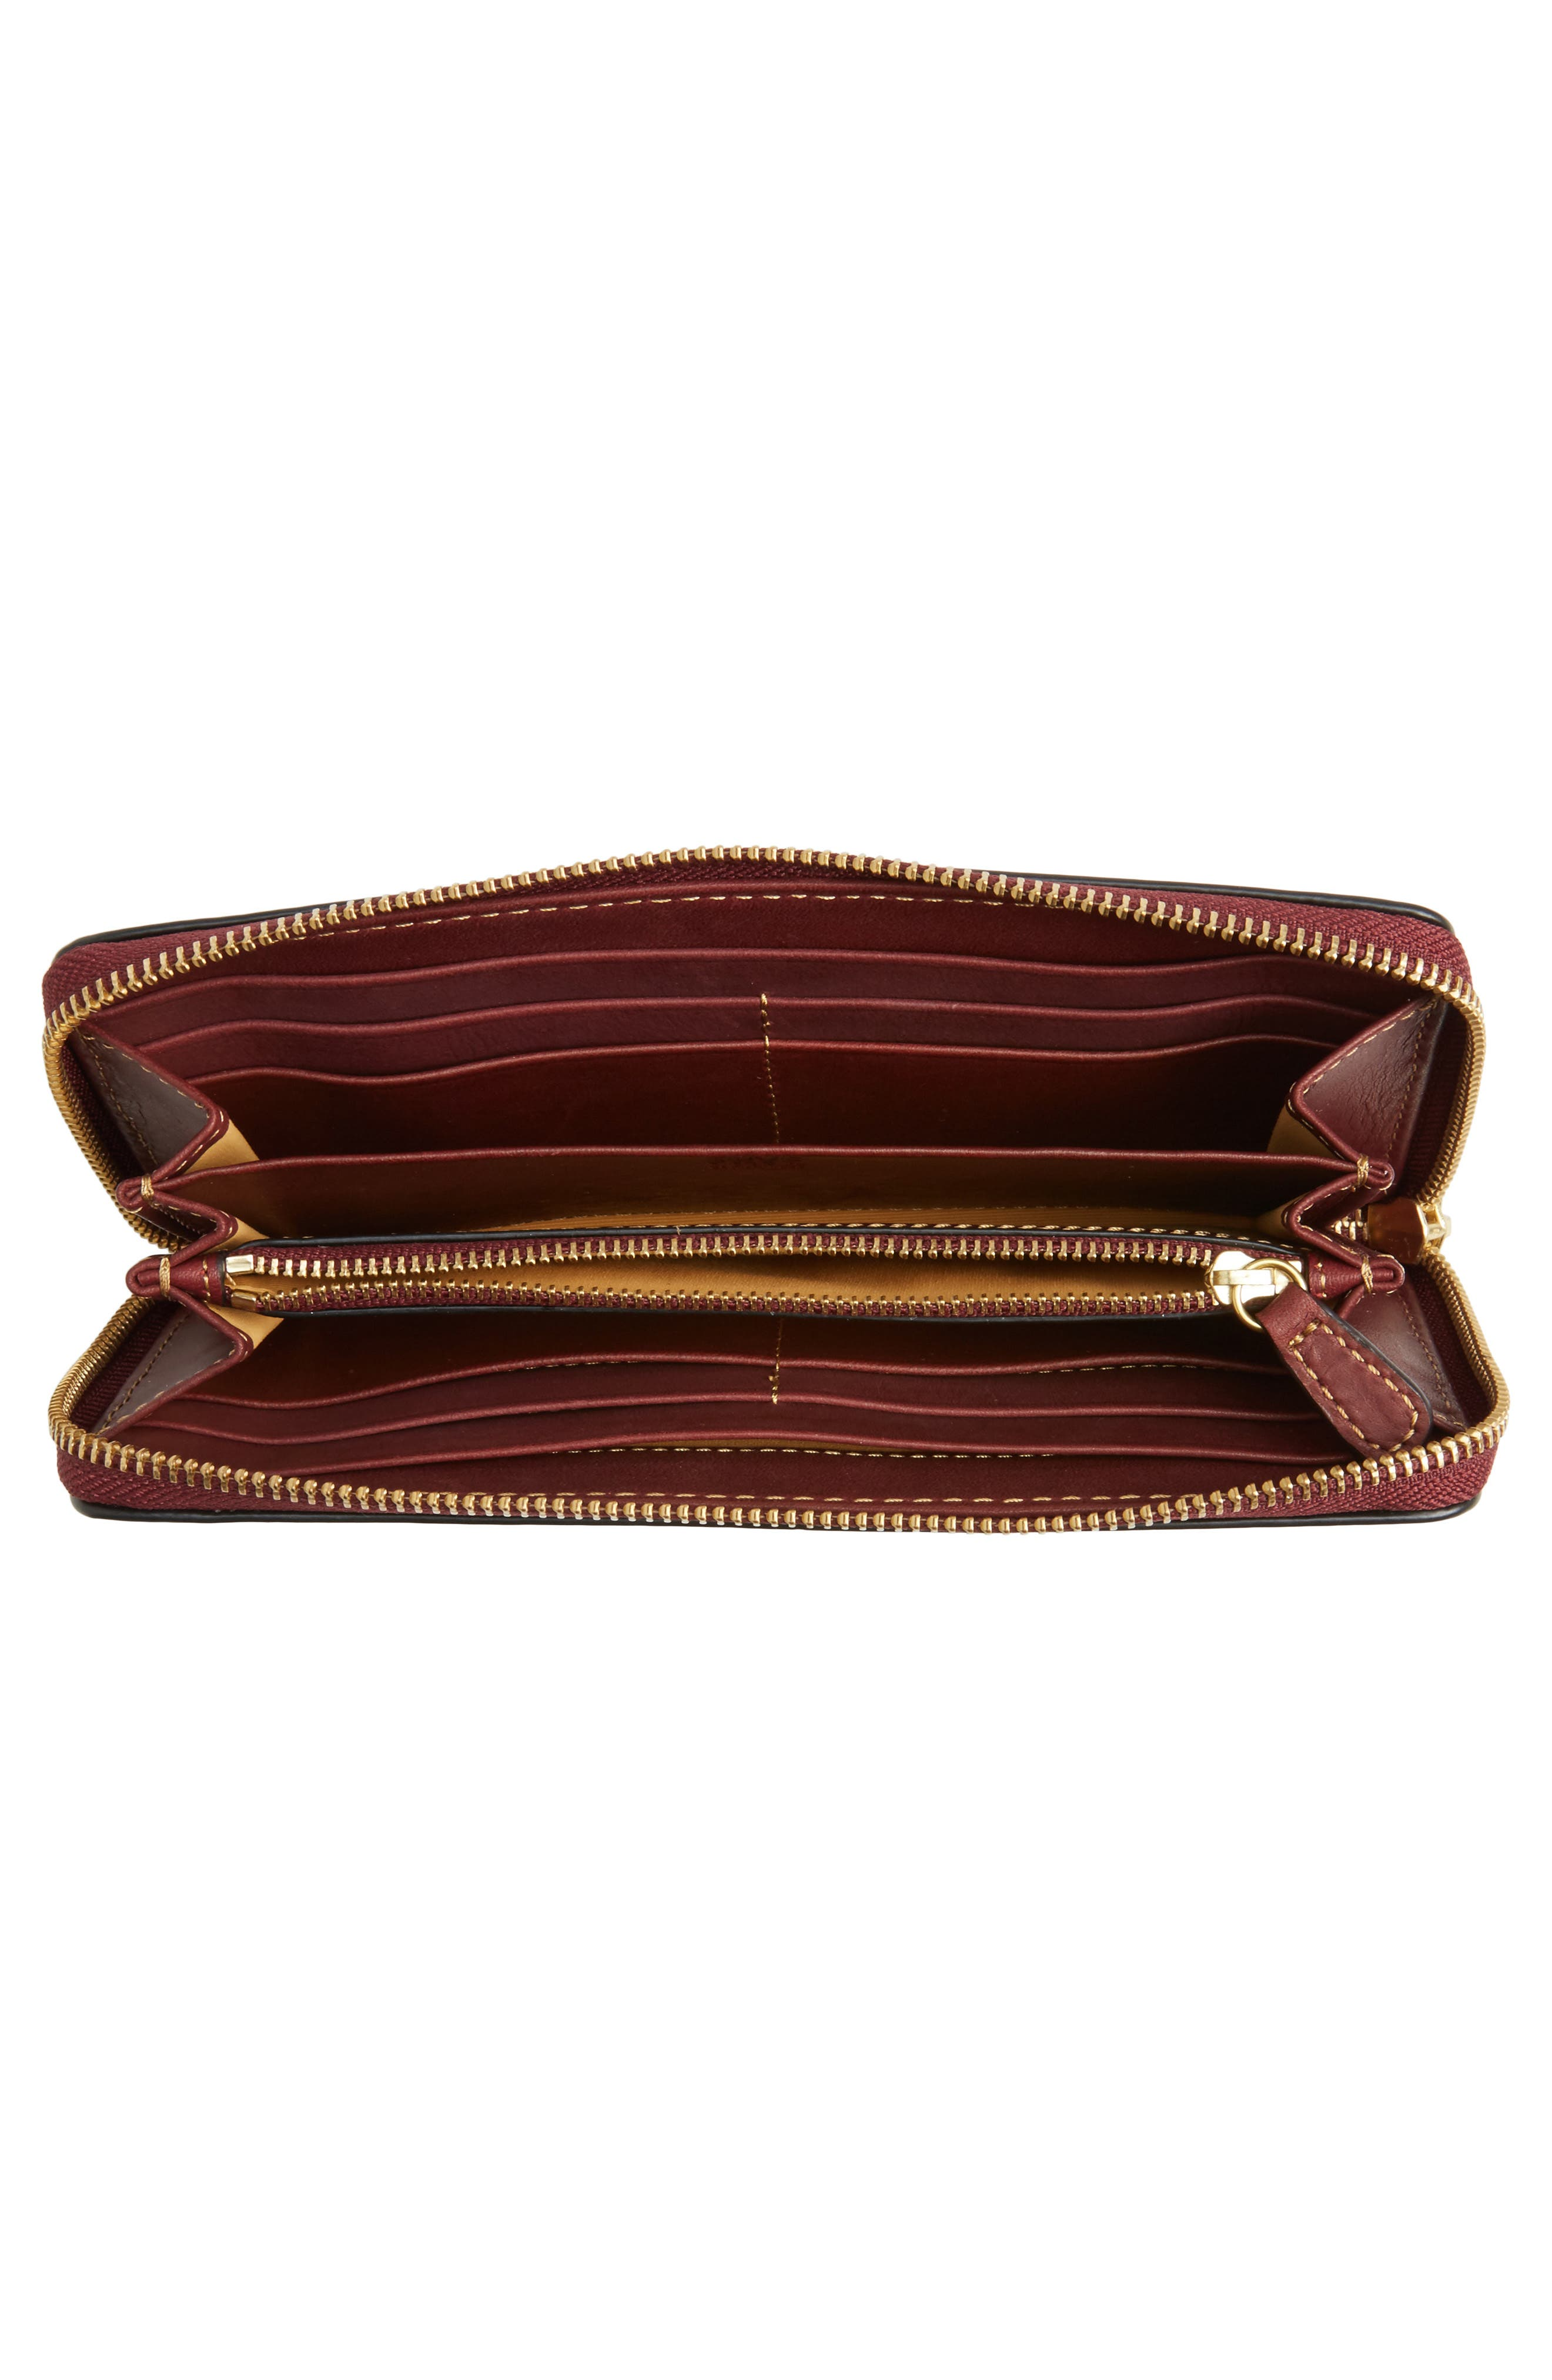 Ilana Harness Leather Zip Wallet,                             Alternate thumbnail 8, color,